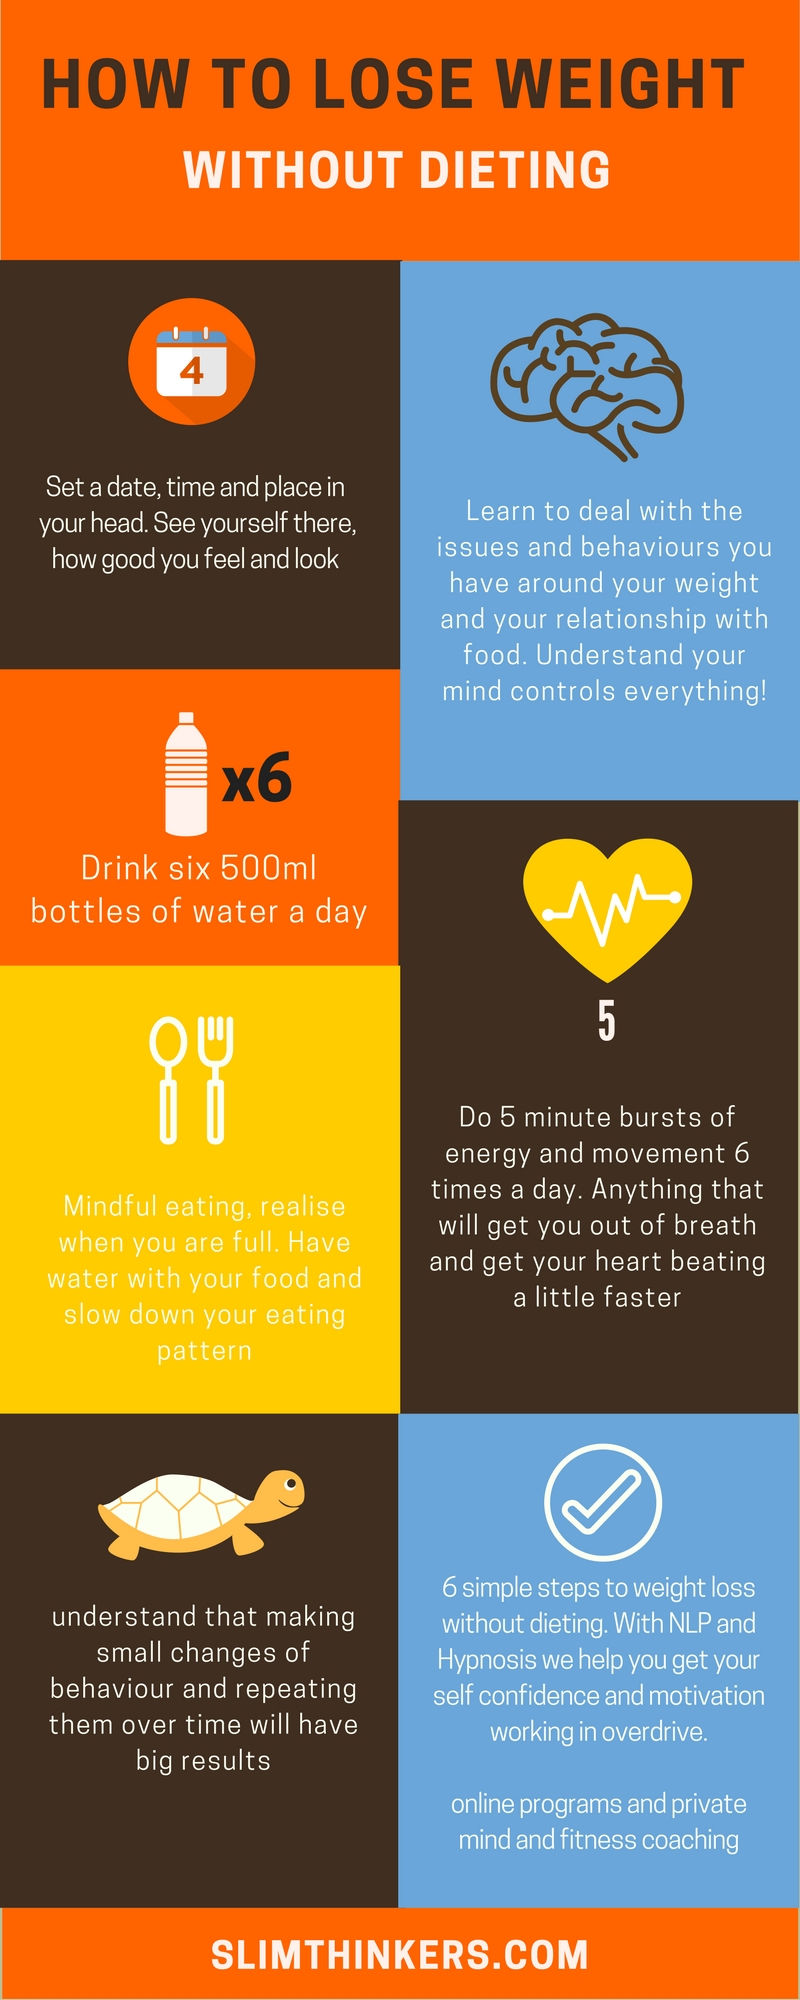 how to lose weight without dieting (info graph)